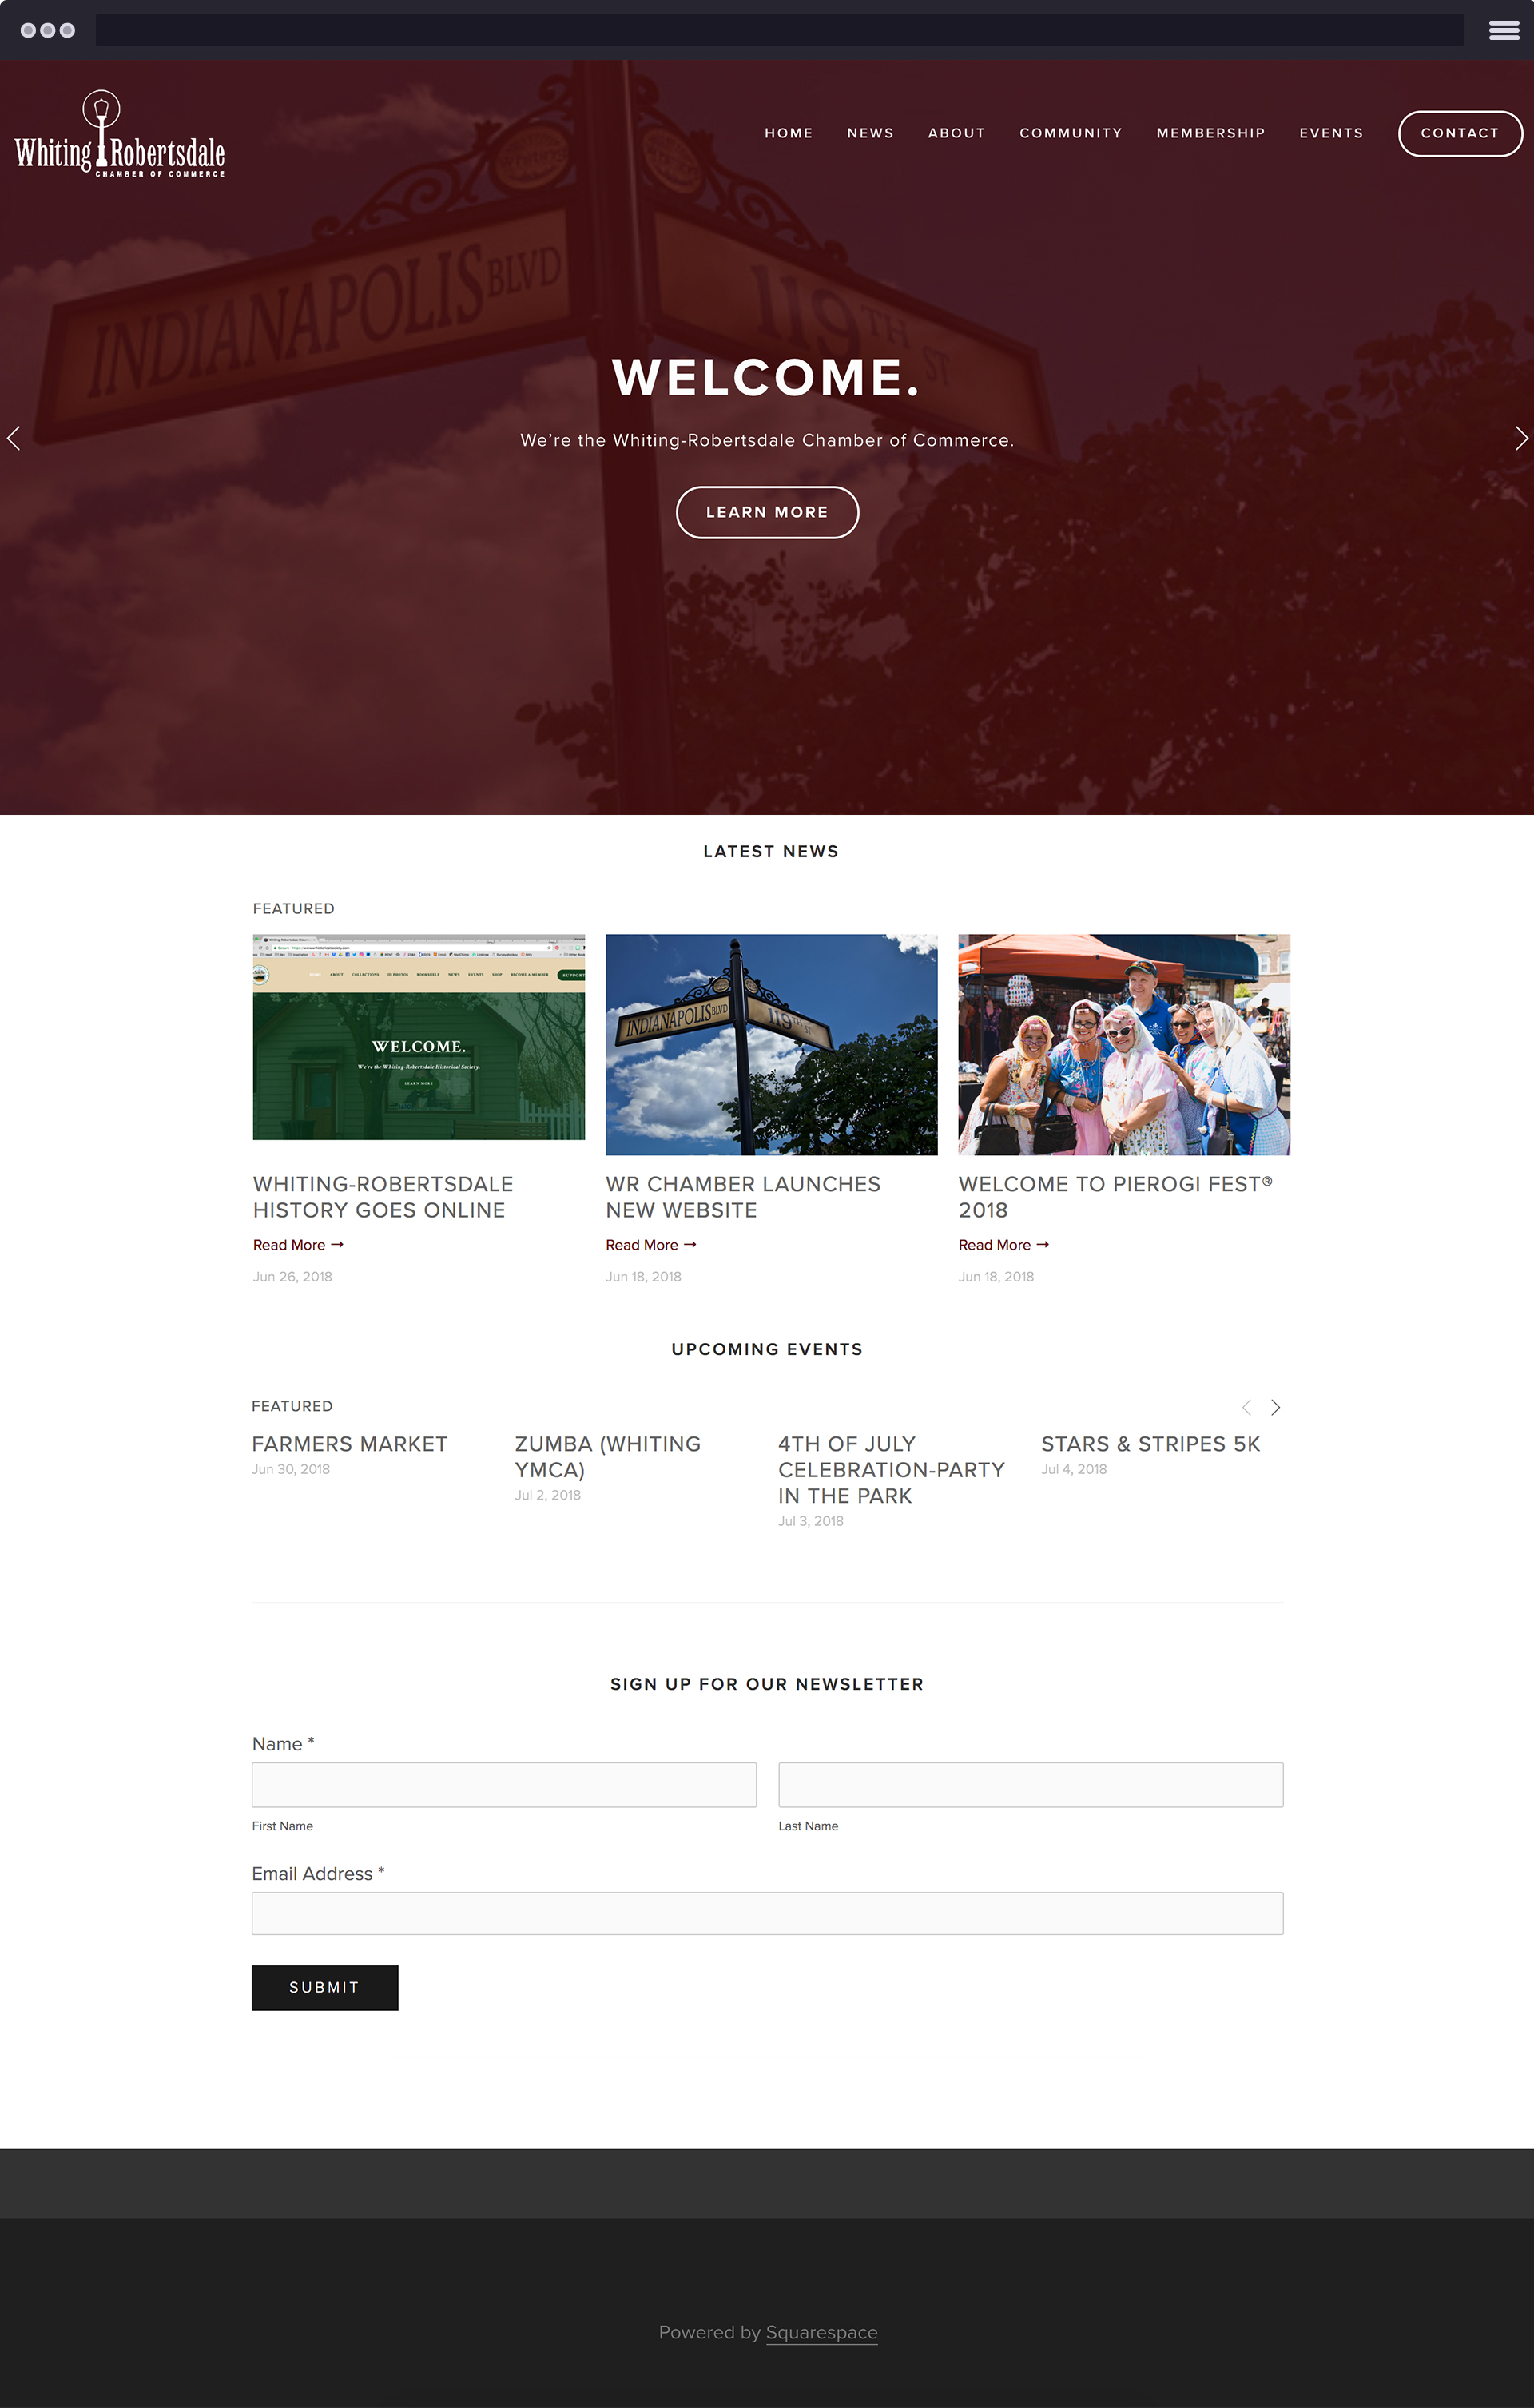 Whiting-Robertsdale Chamber of Commerce website. Full site launch coming soon. The Whiting-Robertsdale Chamber of Commerce is a non-profit organization in Whiting that helps promote and engage local businesses.